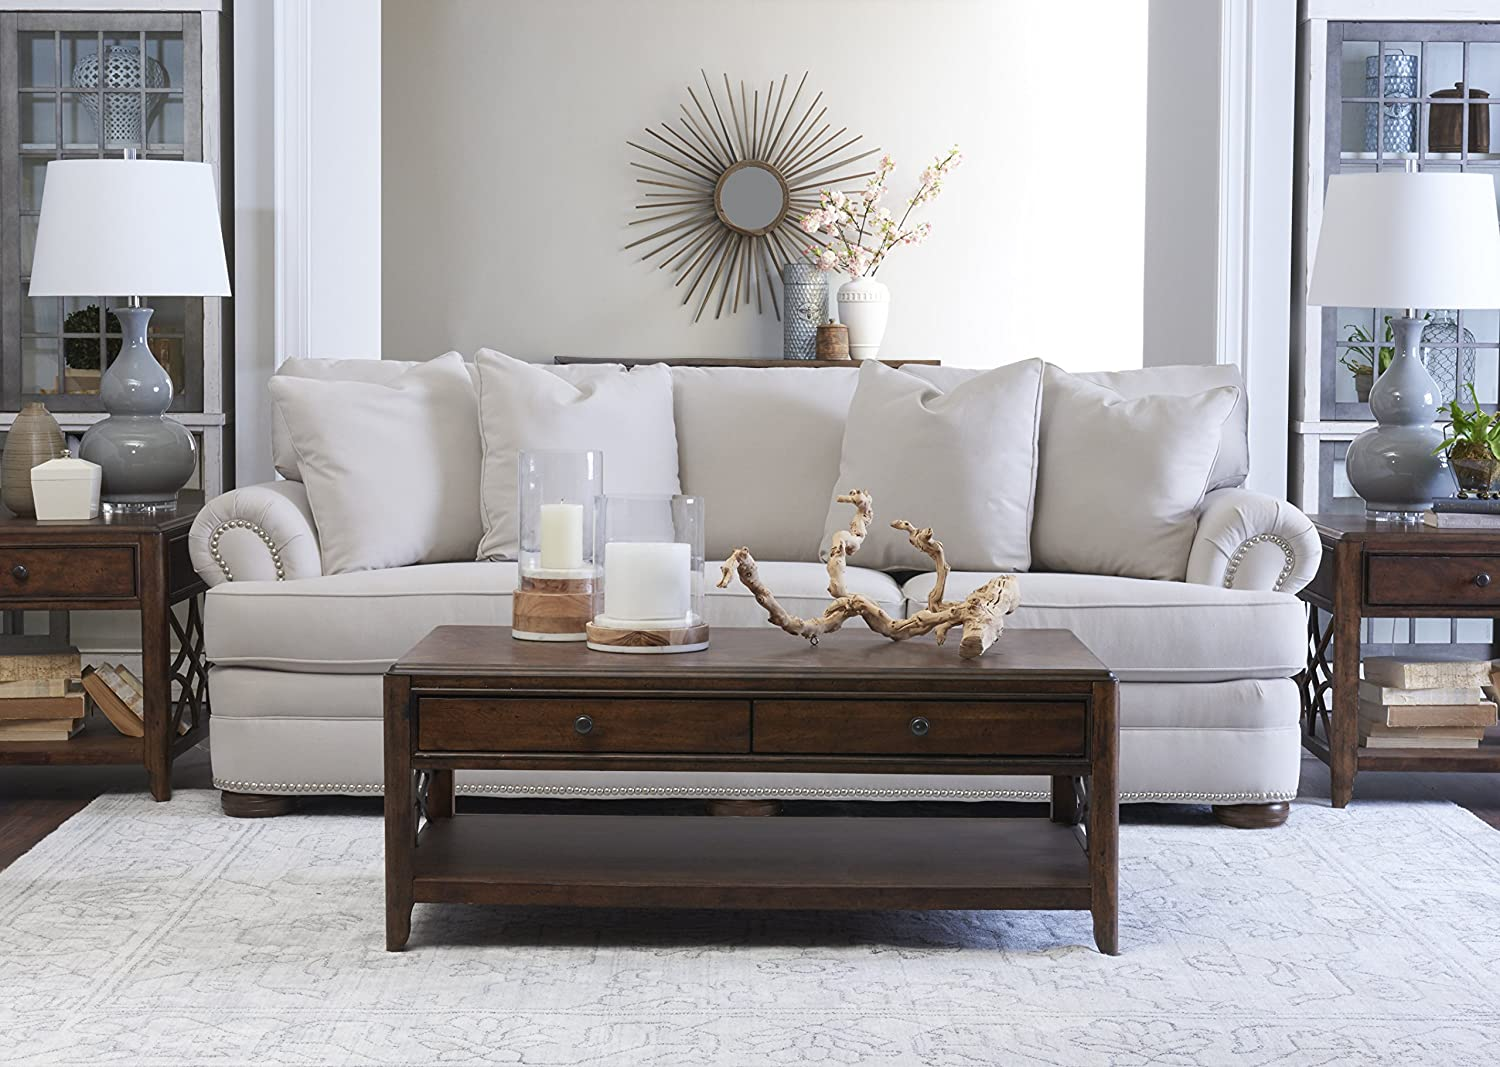 Amazon.com: Klaussner Home Furnishings Paxton - Sofá con 4 ...